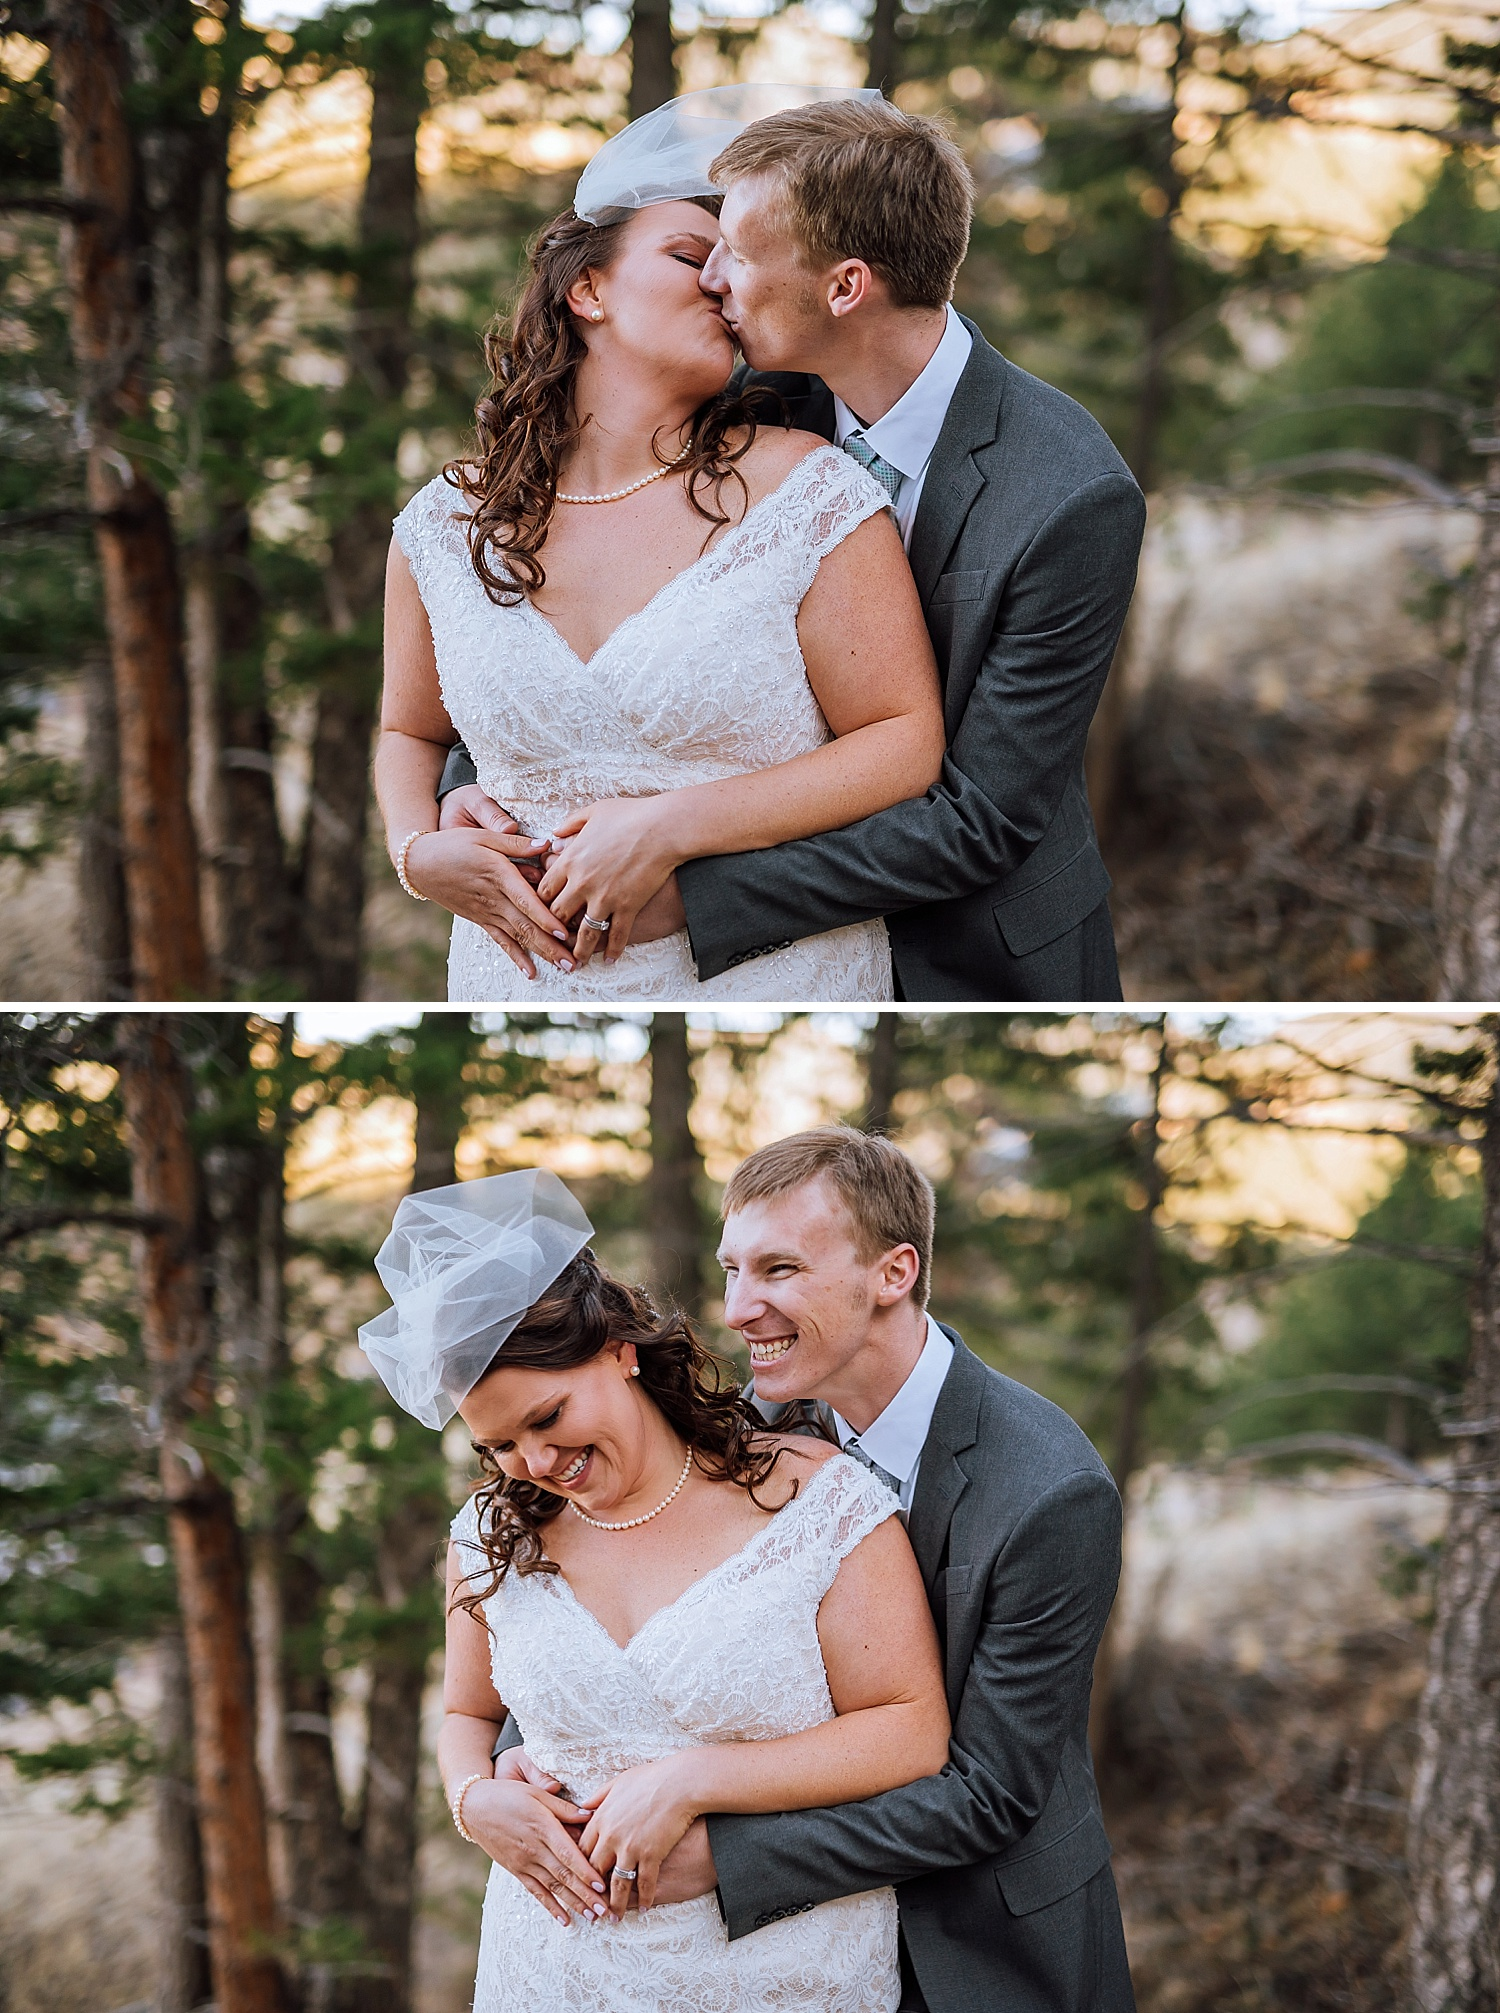 I love how the bride and groom are posed in this picture. Her veil is so pretty! The perfect size for an adventurous wedding photo!Photo by Maddie Mae Photography